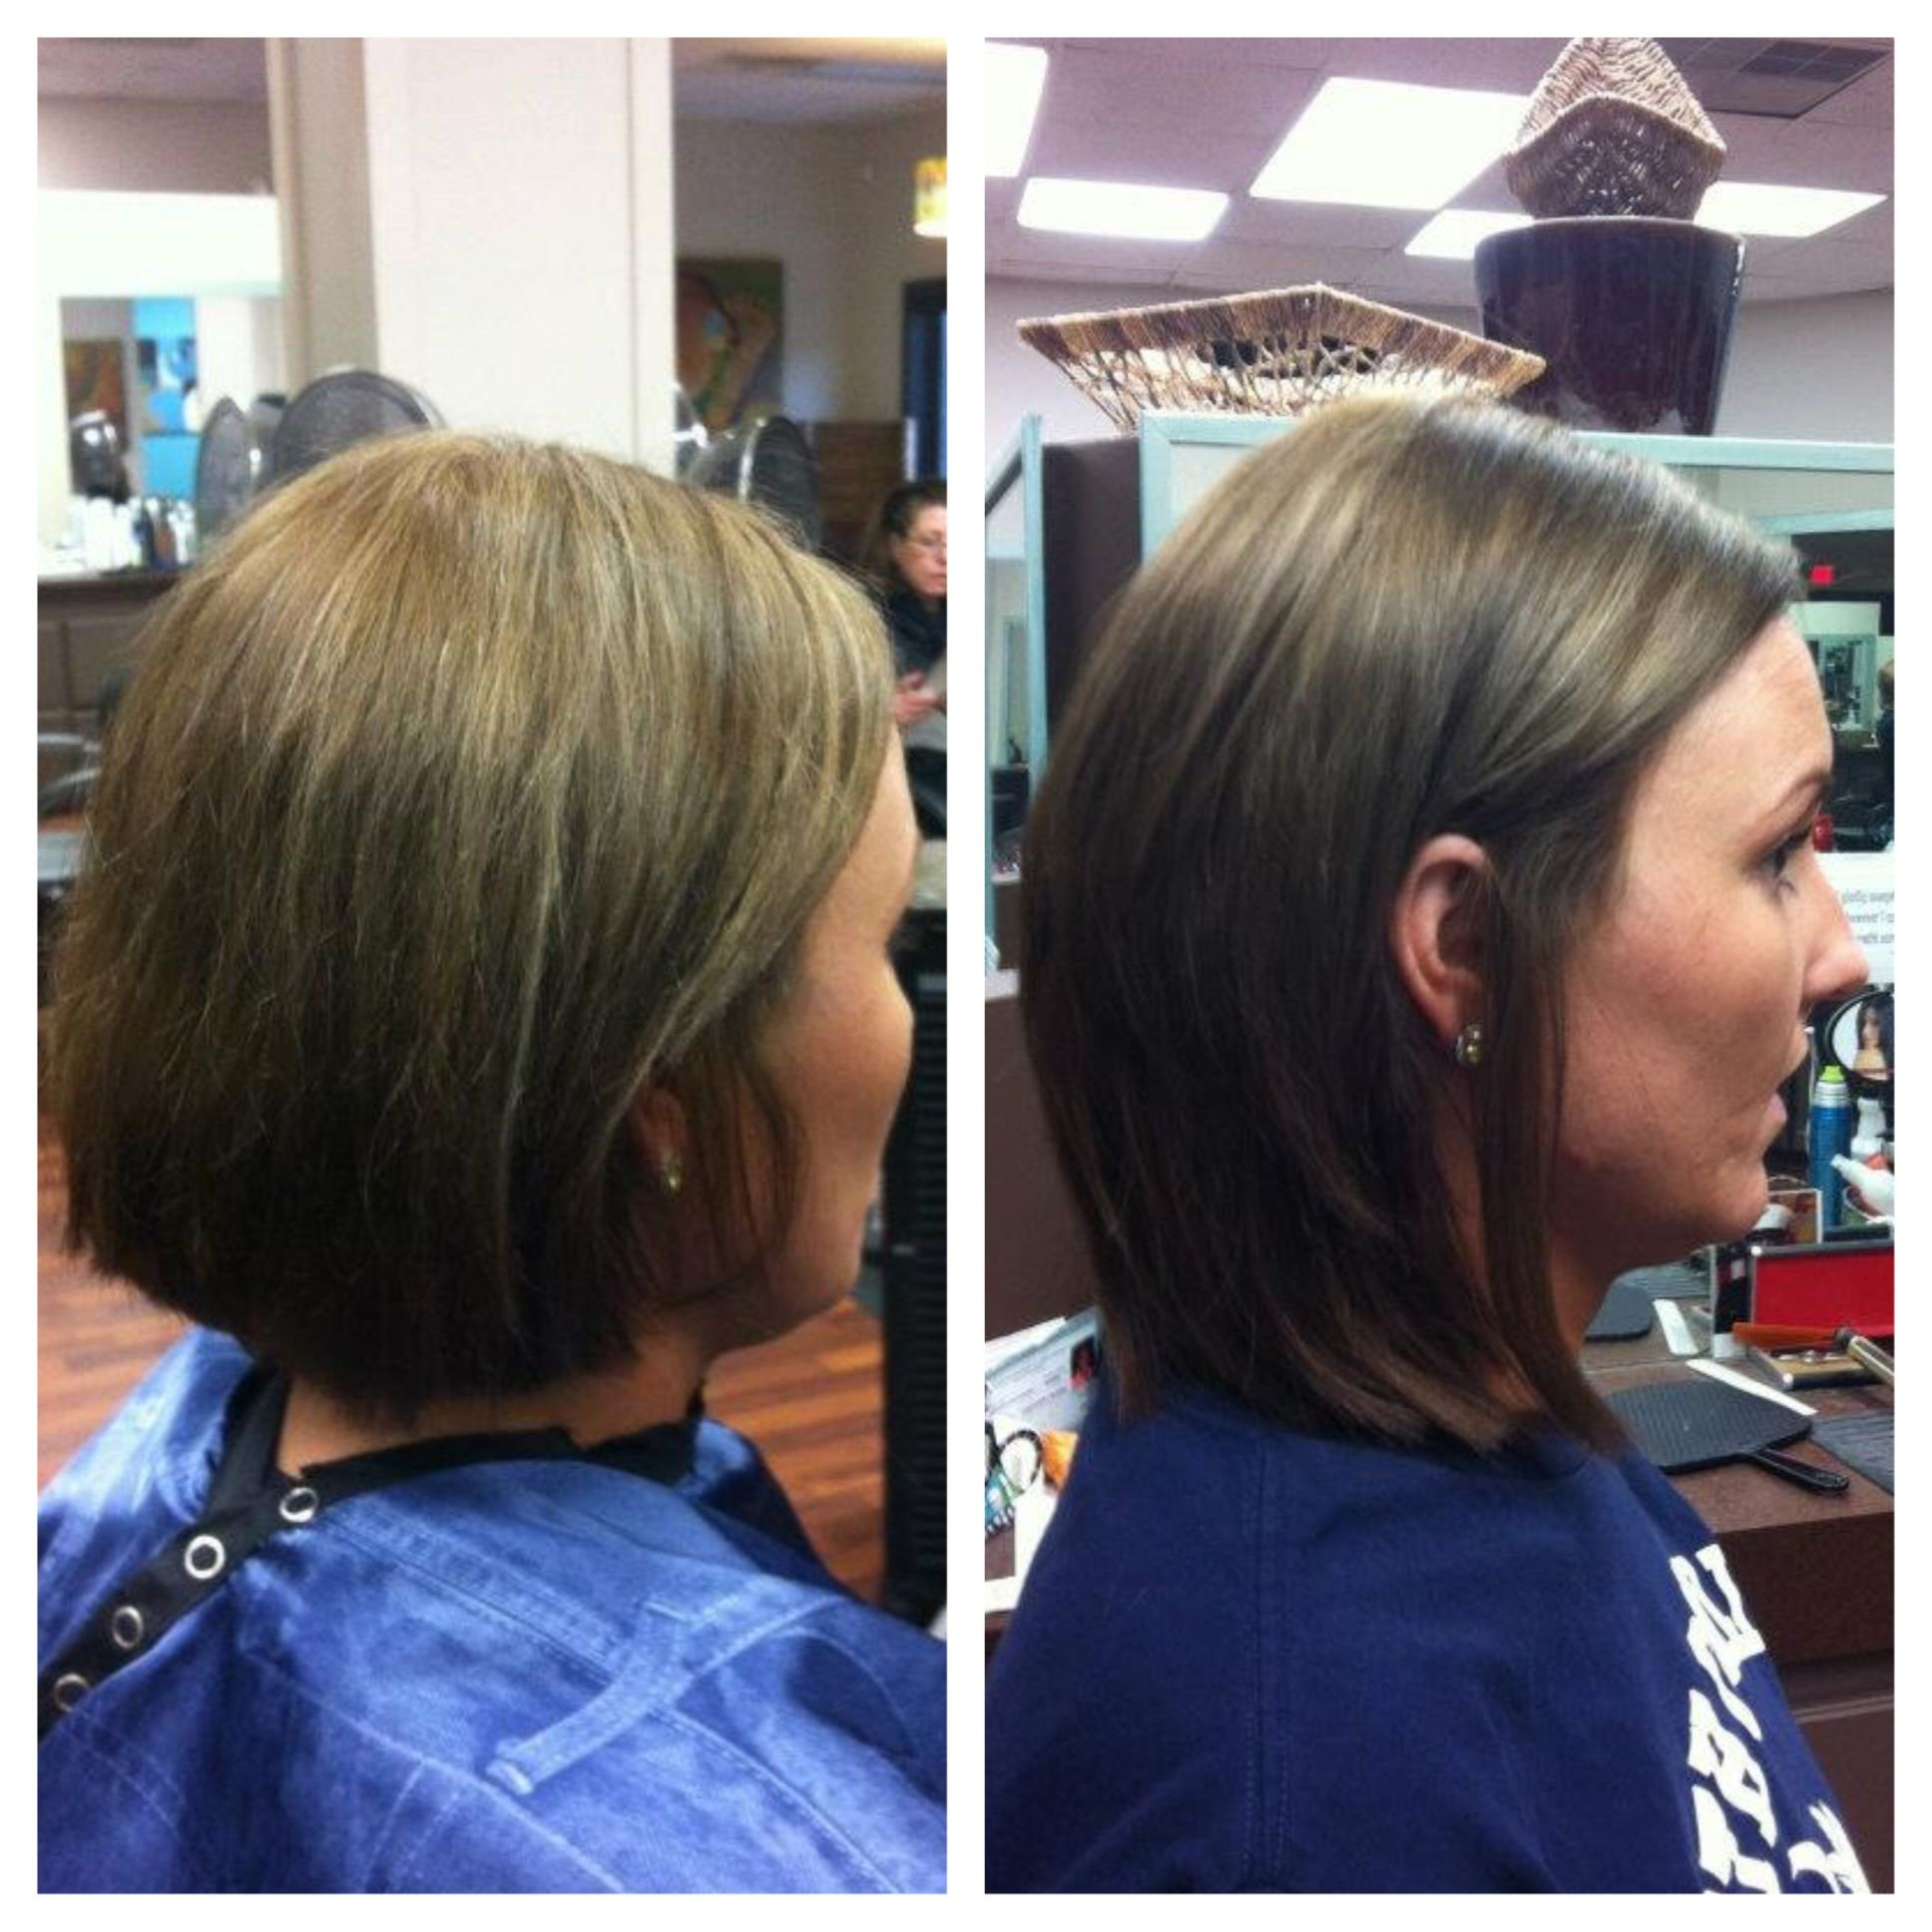 Before and after extensions short bob to shoulder length bob lex before and after extensions short bob to shoulder length bob lex moore style house salon pmusecretfo Gallery